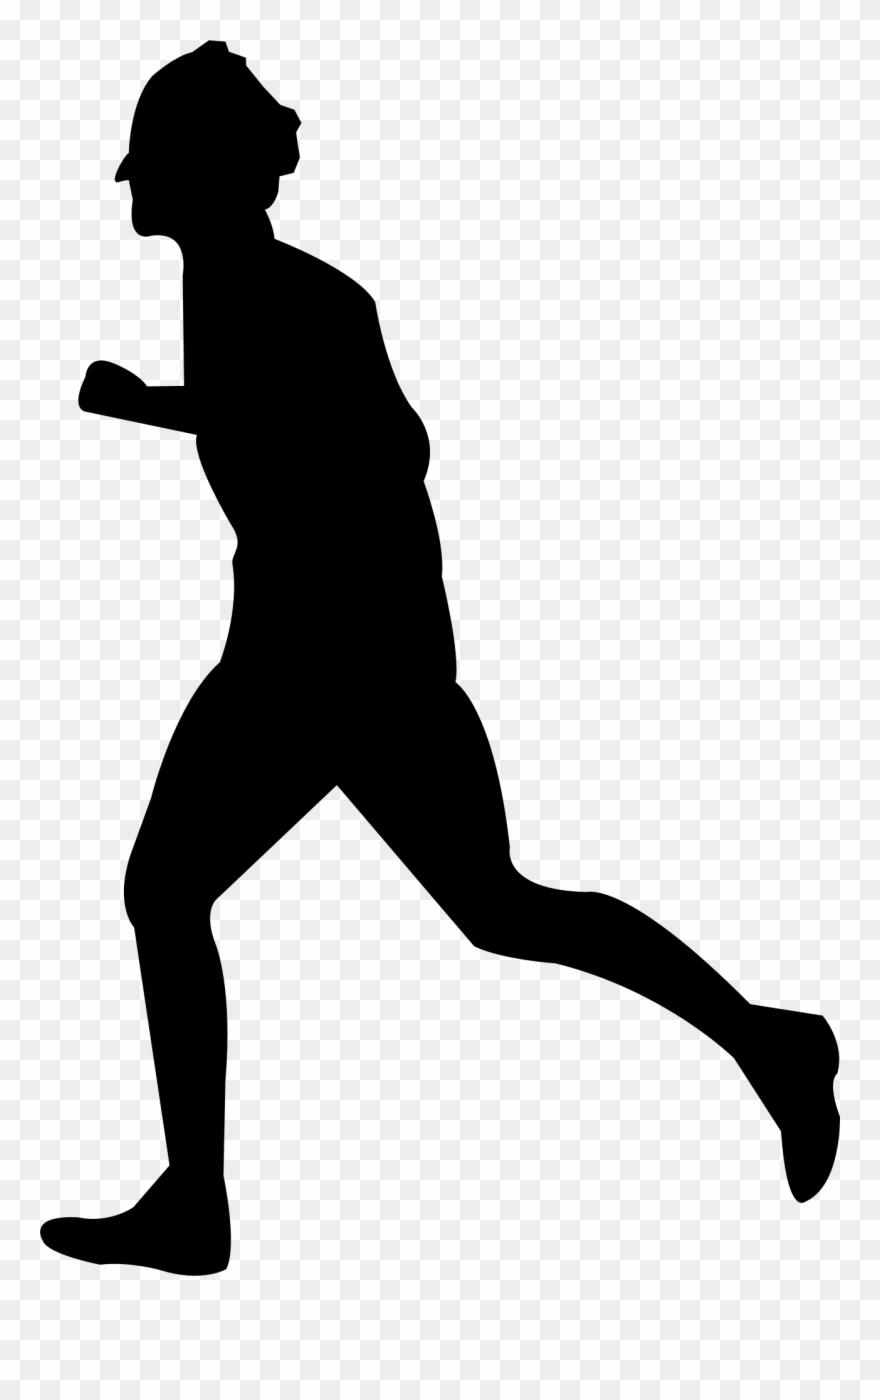 silhouette person running run vectors photos and psd files free download running silhouette person